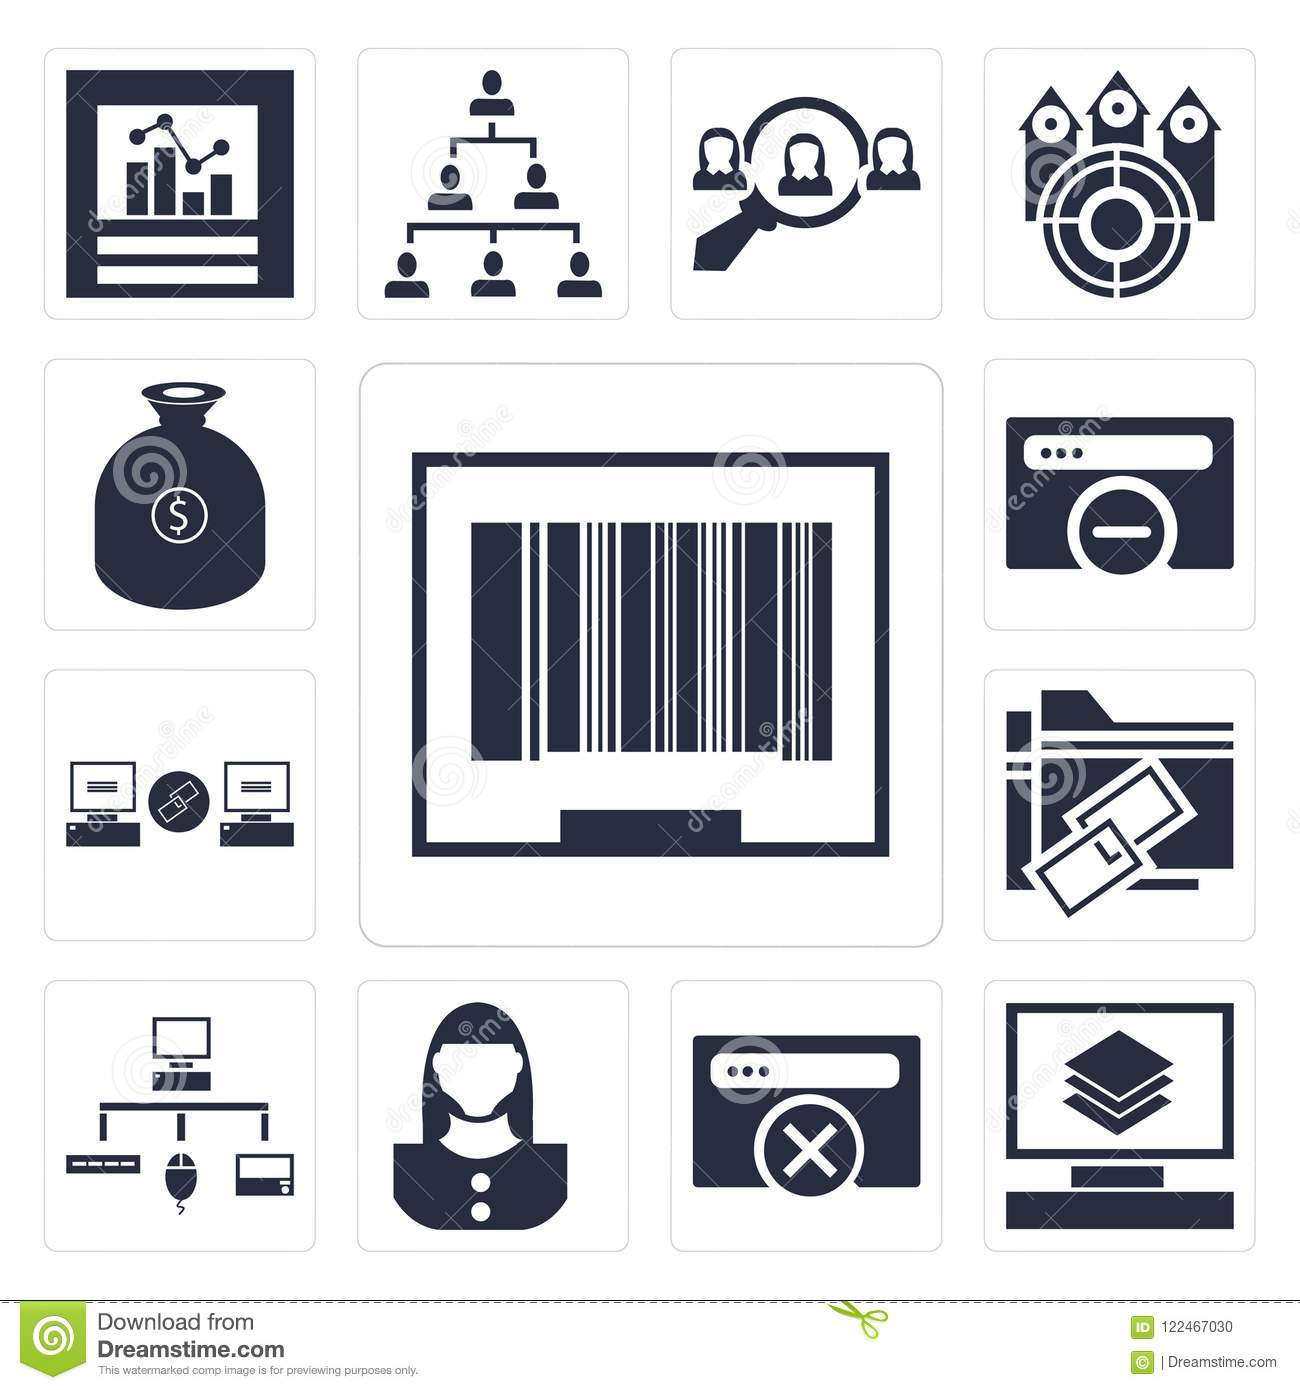 Set Of Barcode, Layers, Browser, User, Sitemap, Link, Money